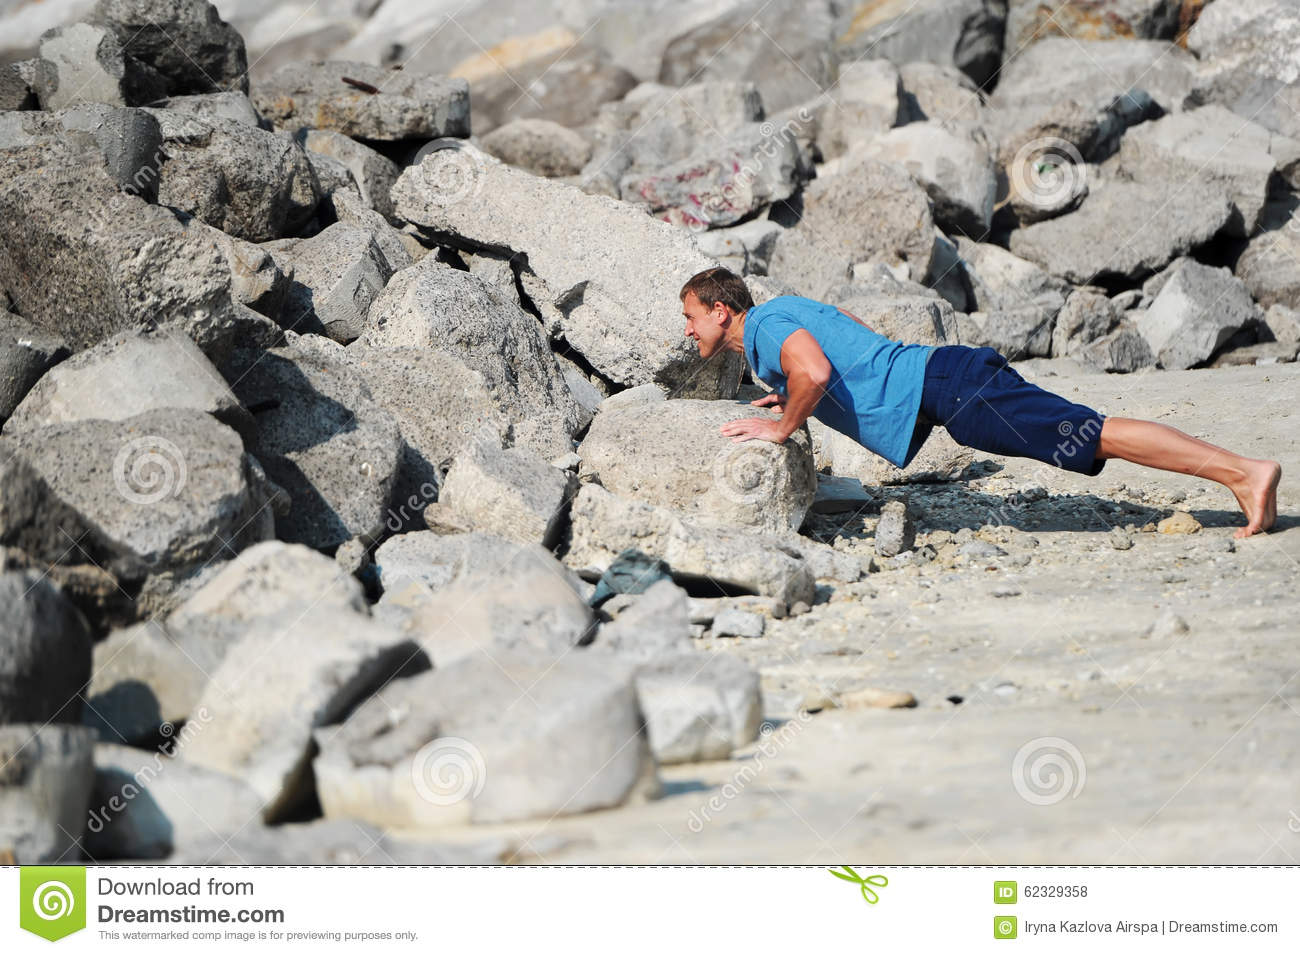 The young man carries out push-ups among stones